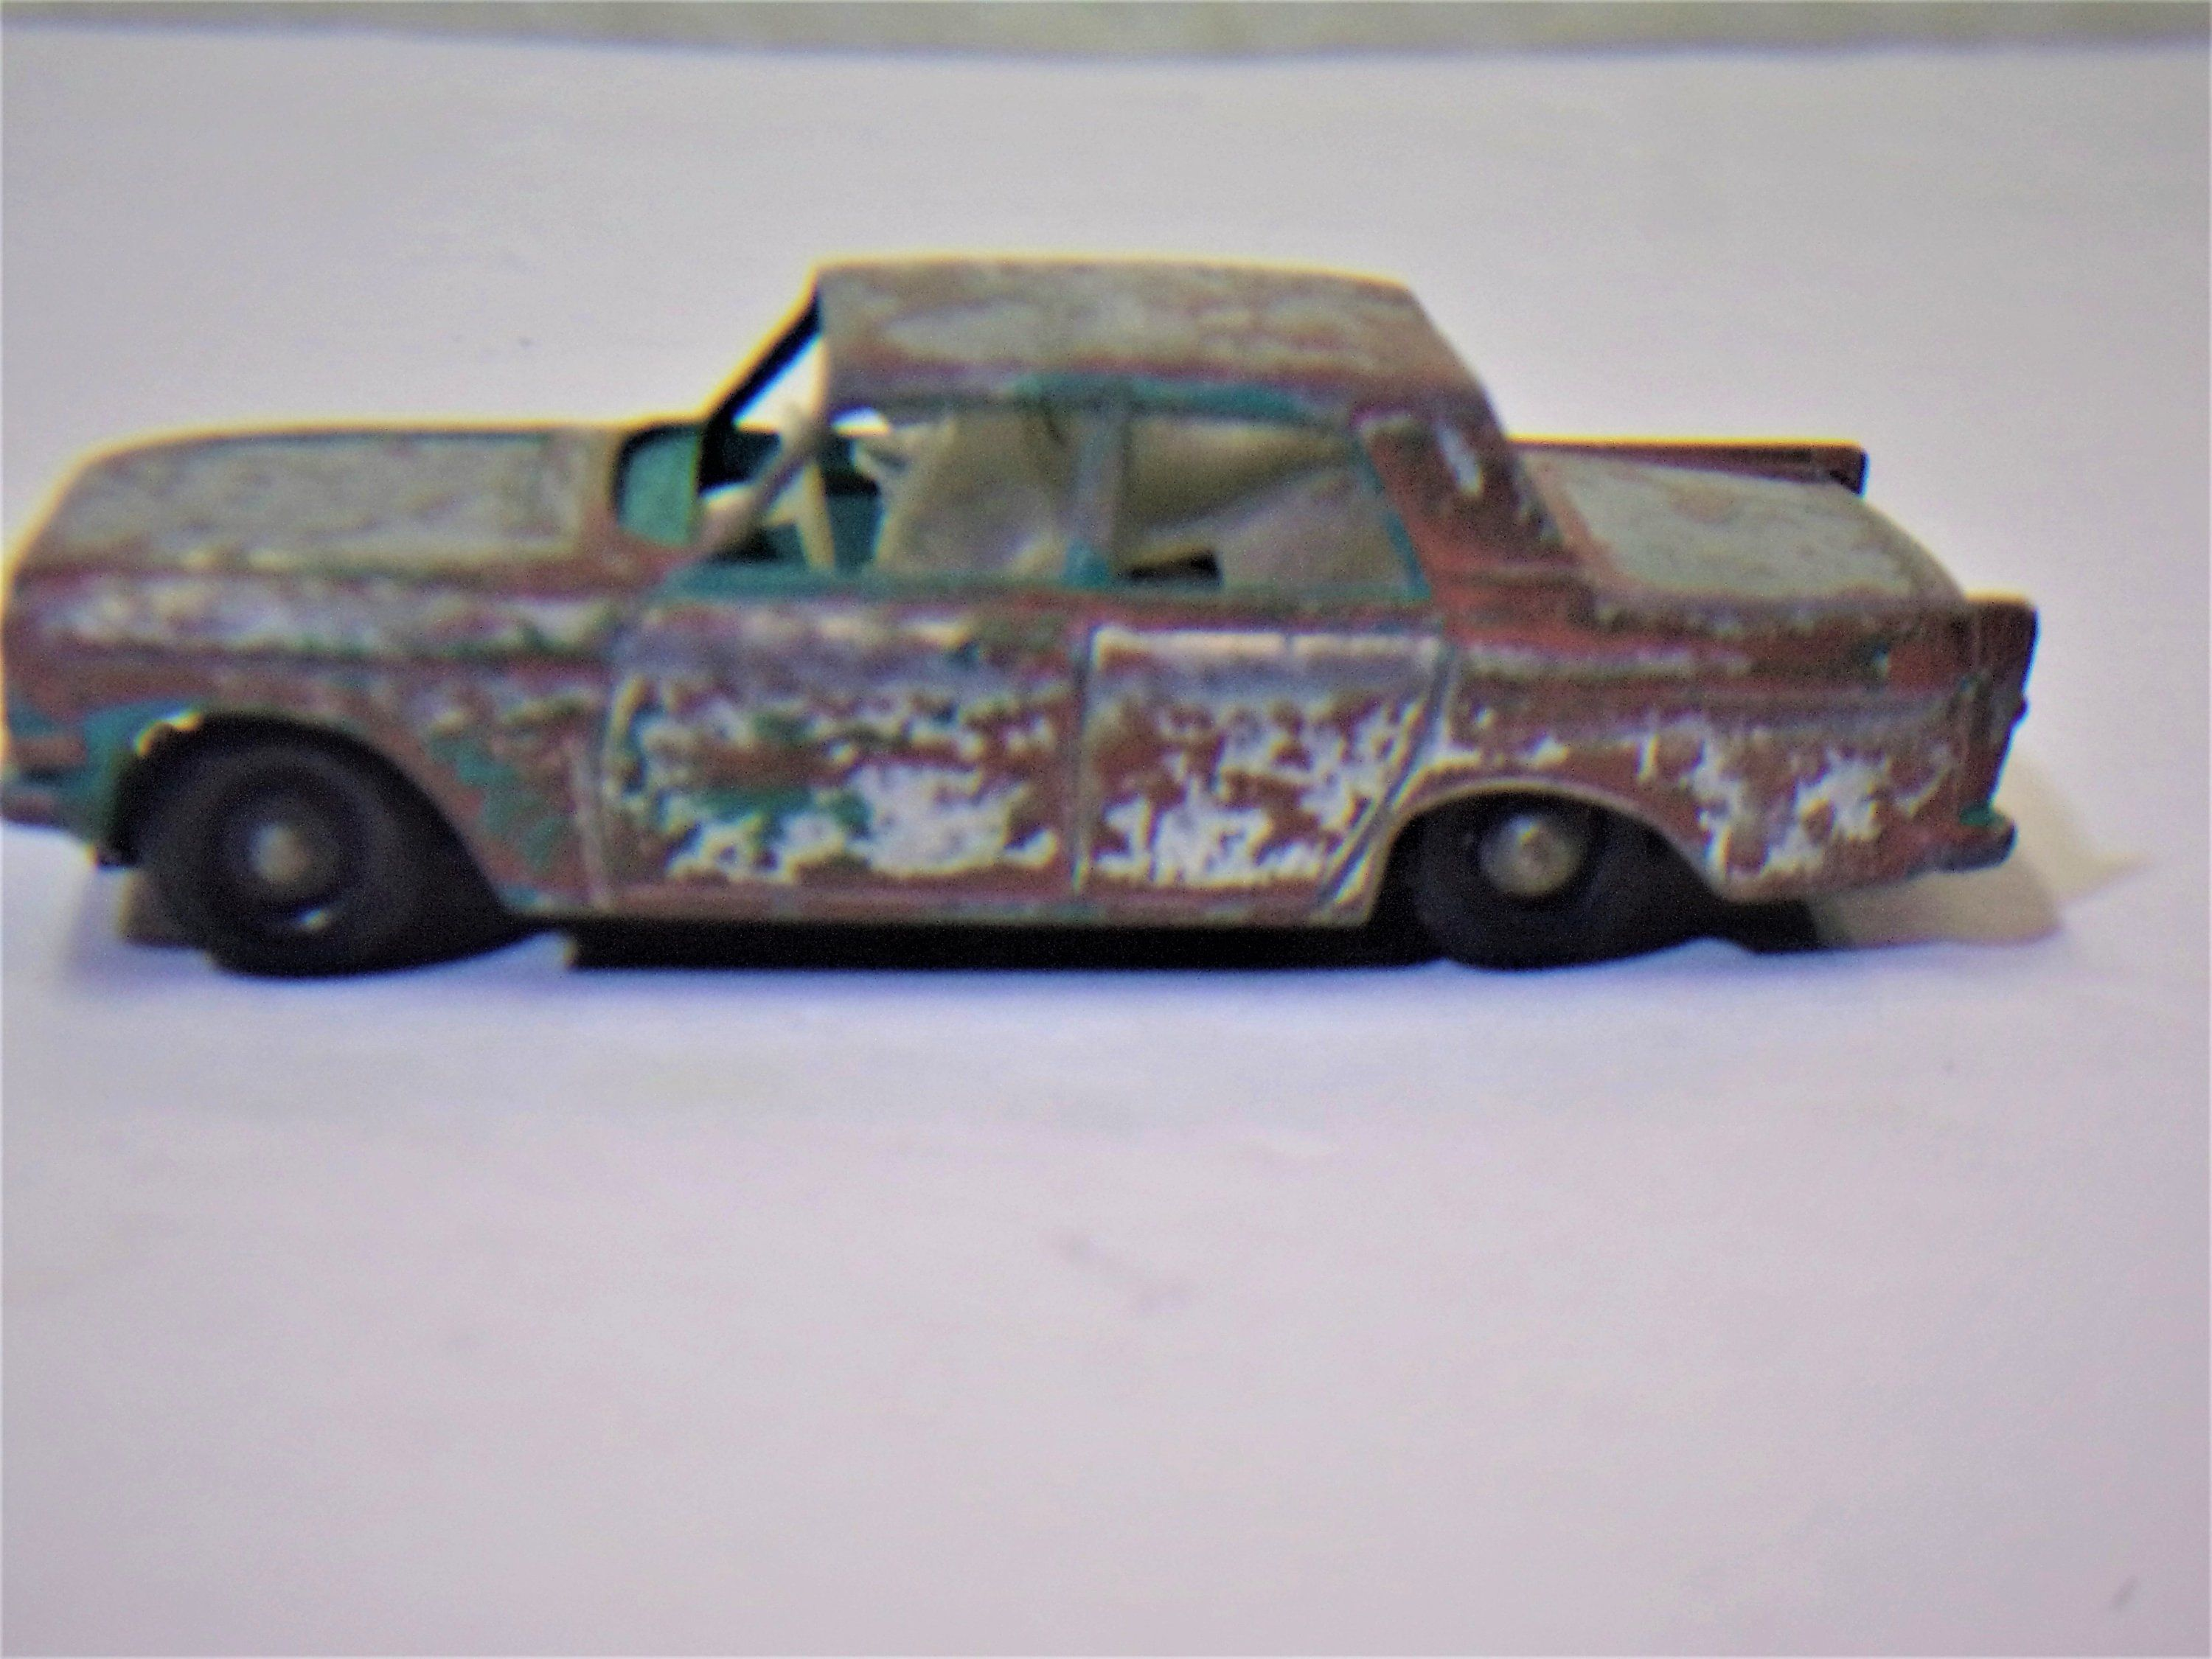 Sale 1960 S Vintage Diecast Lesney Matchbox Ford Zephyr 6 No 33 With Hitch Diecast England Barn Find Rusty Gold Ford Left Si 1960s Vintage Vintage Removal Van